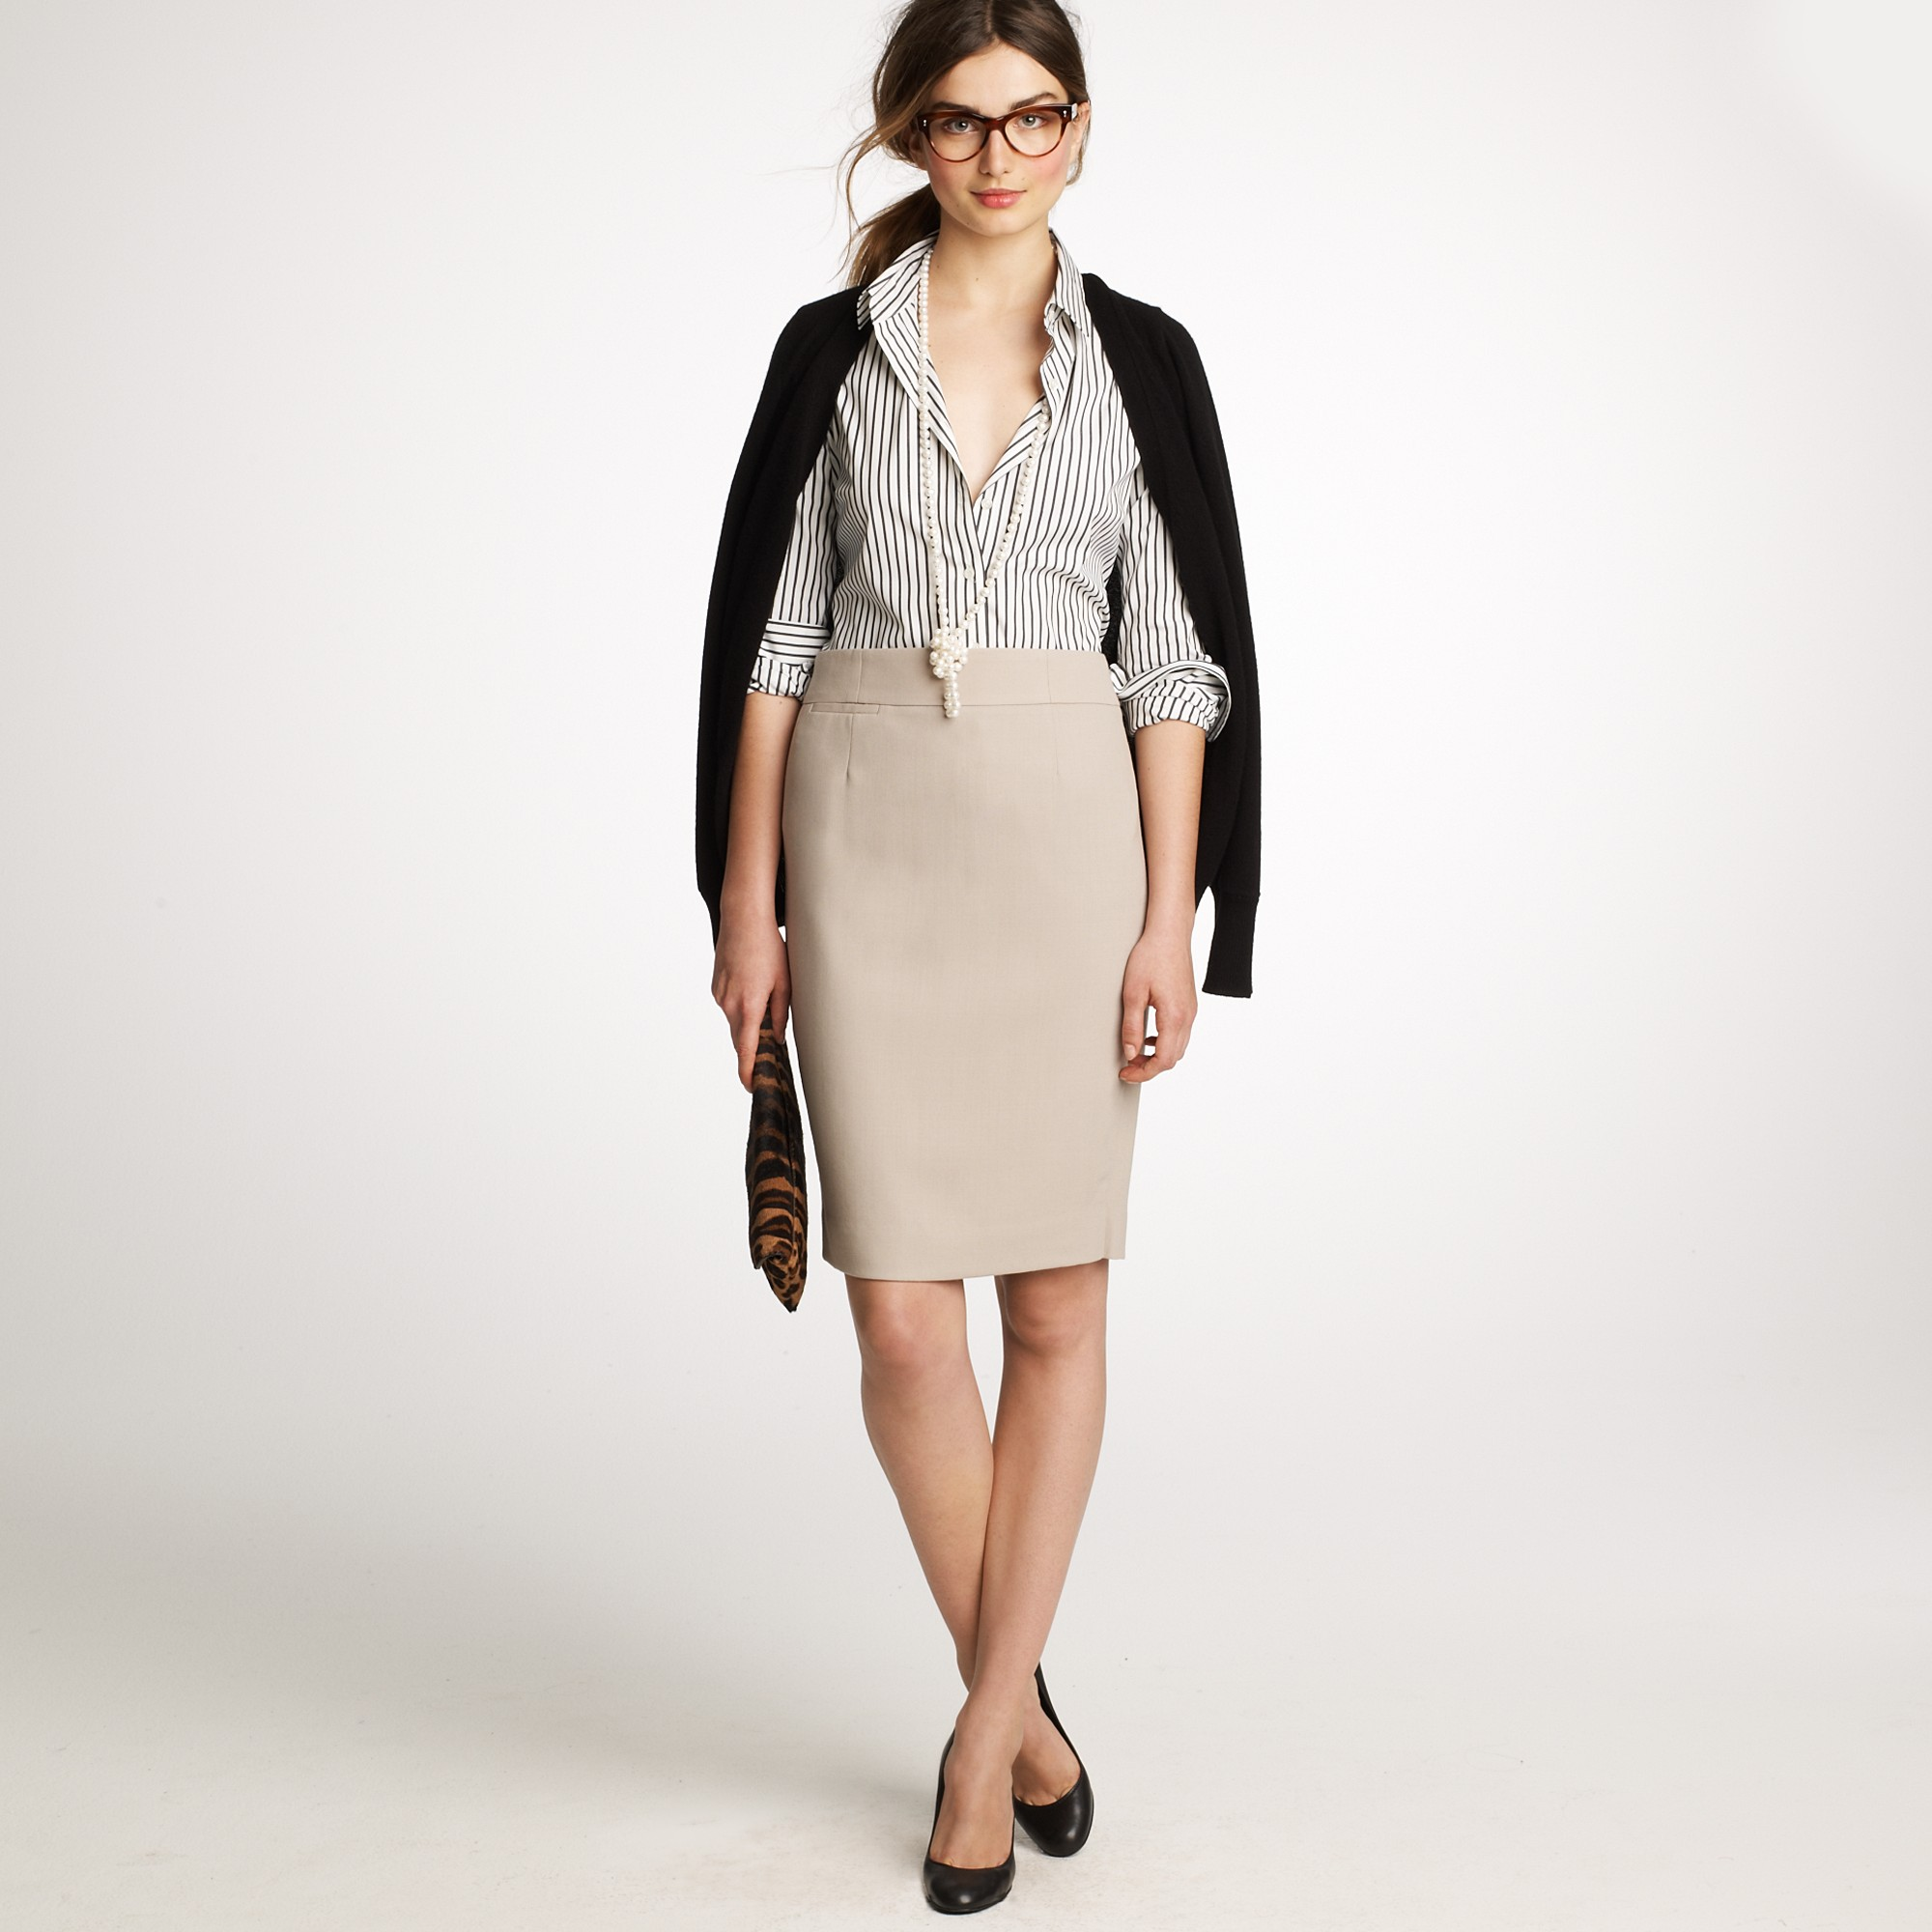 J.crew Pencil Skirt in Wool Crepe in Natural | Lyst